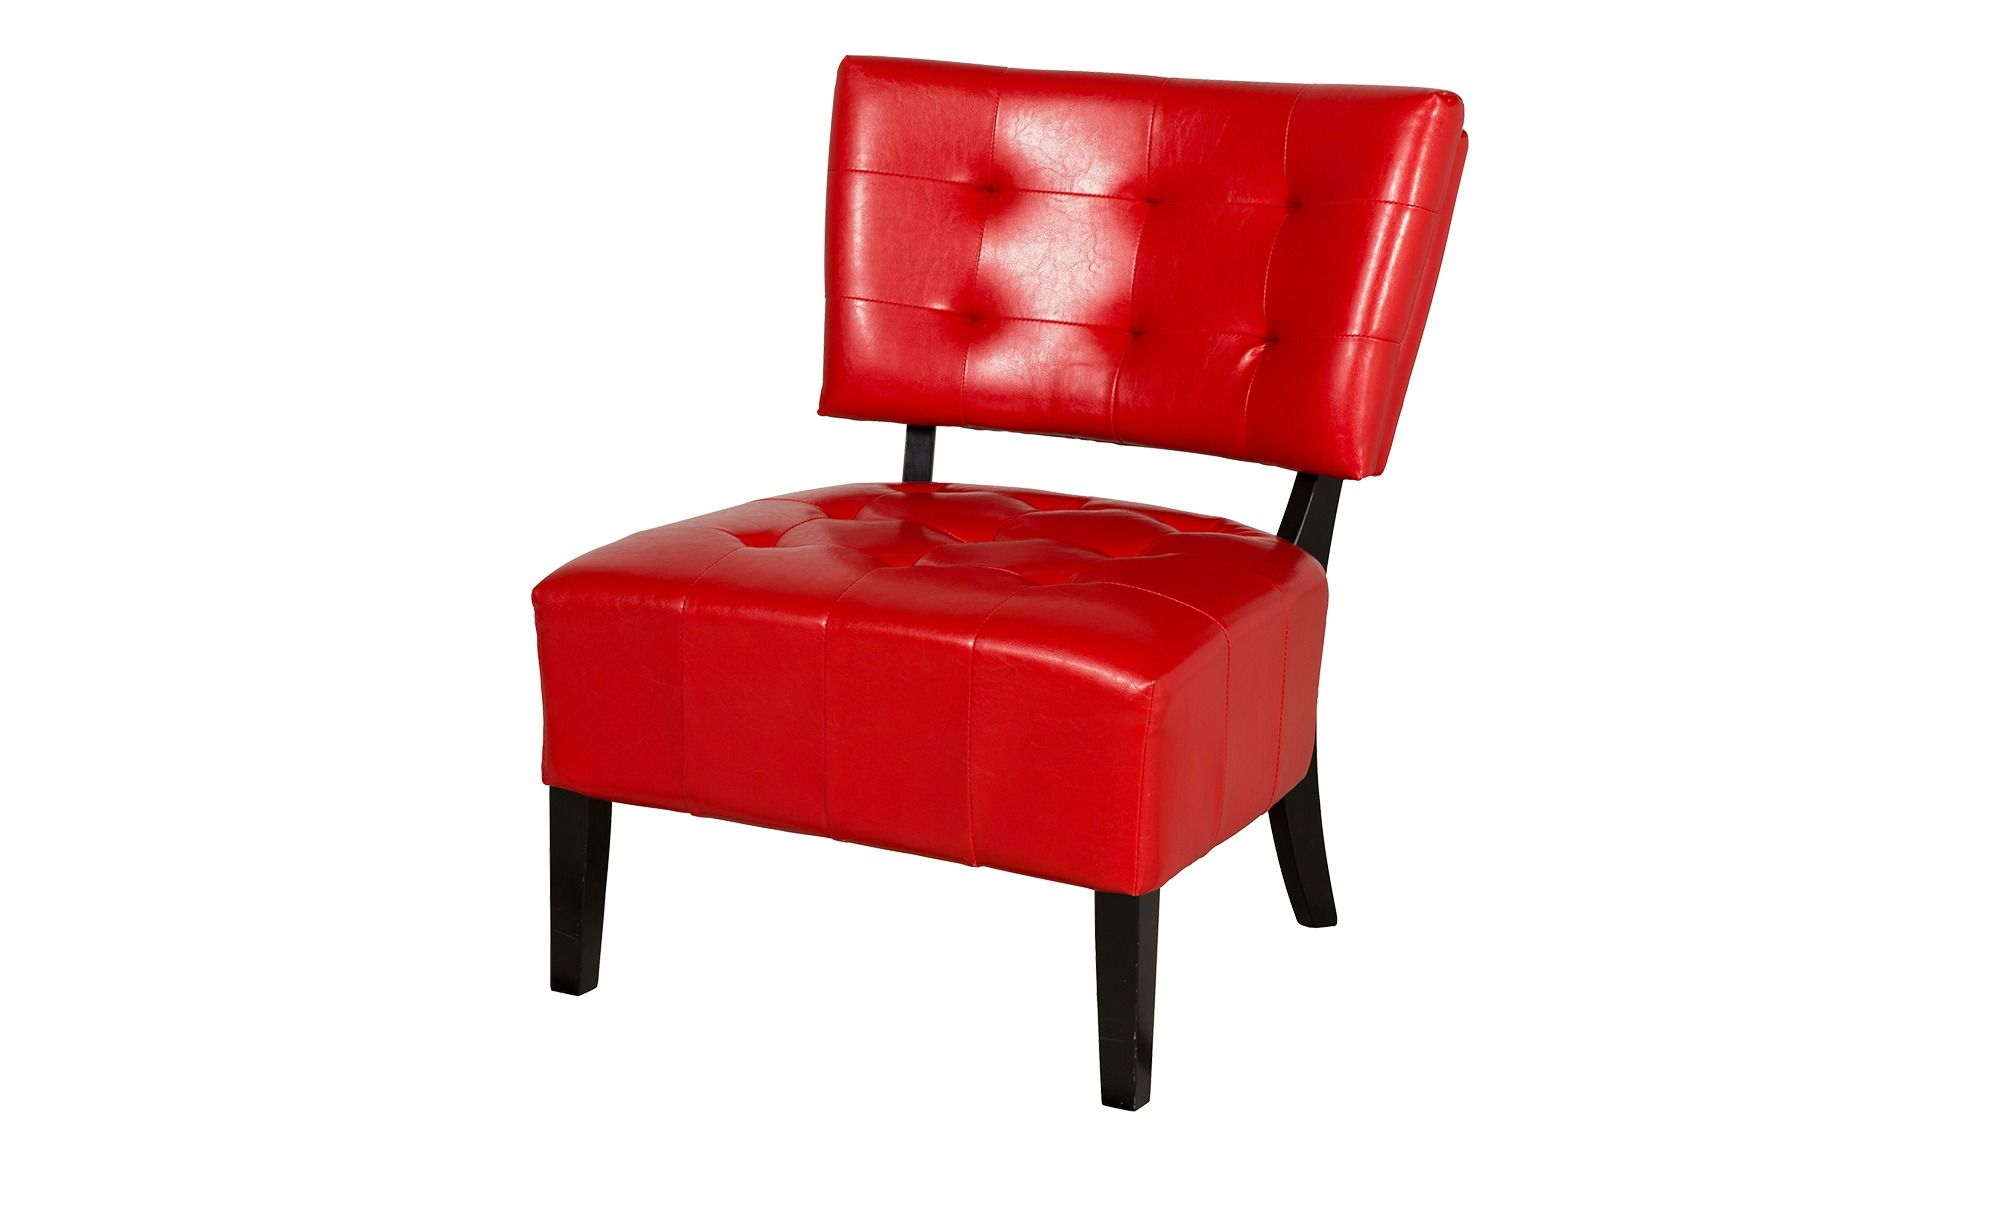 Roter Retro Sessel Sessel Rot Mit Knopfsteppung Lena Dream Living Room Furniture